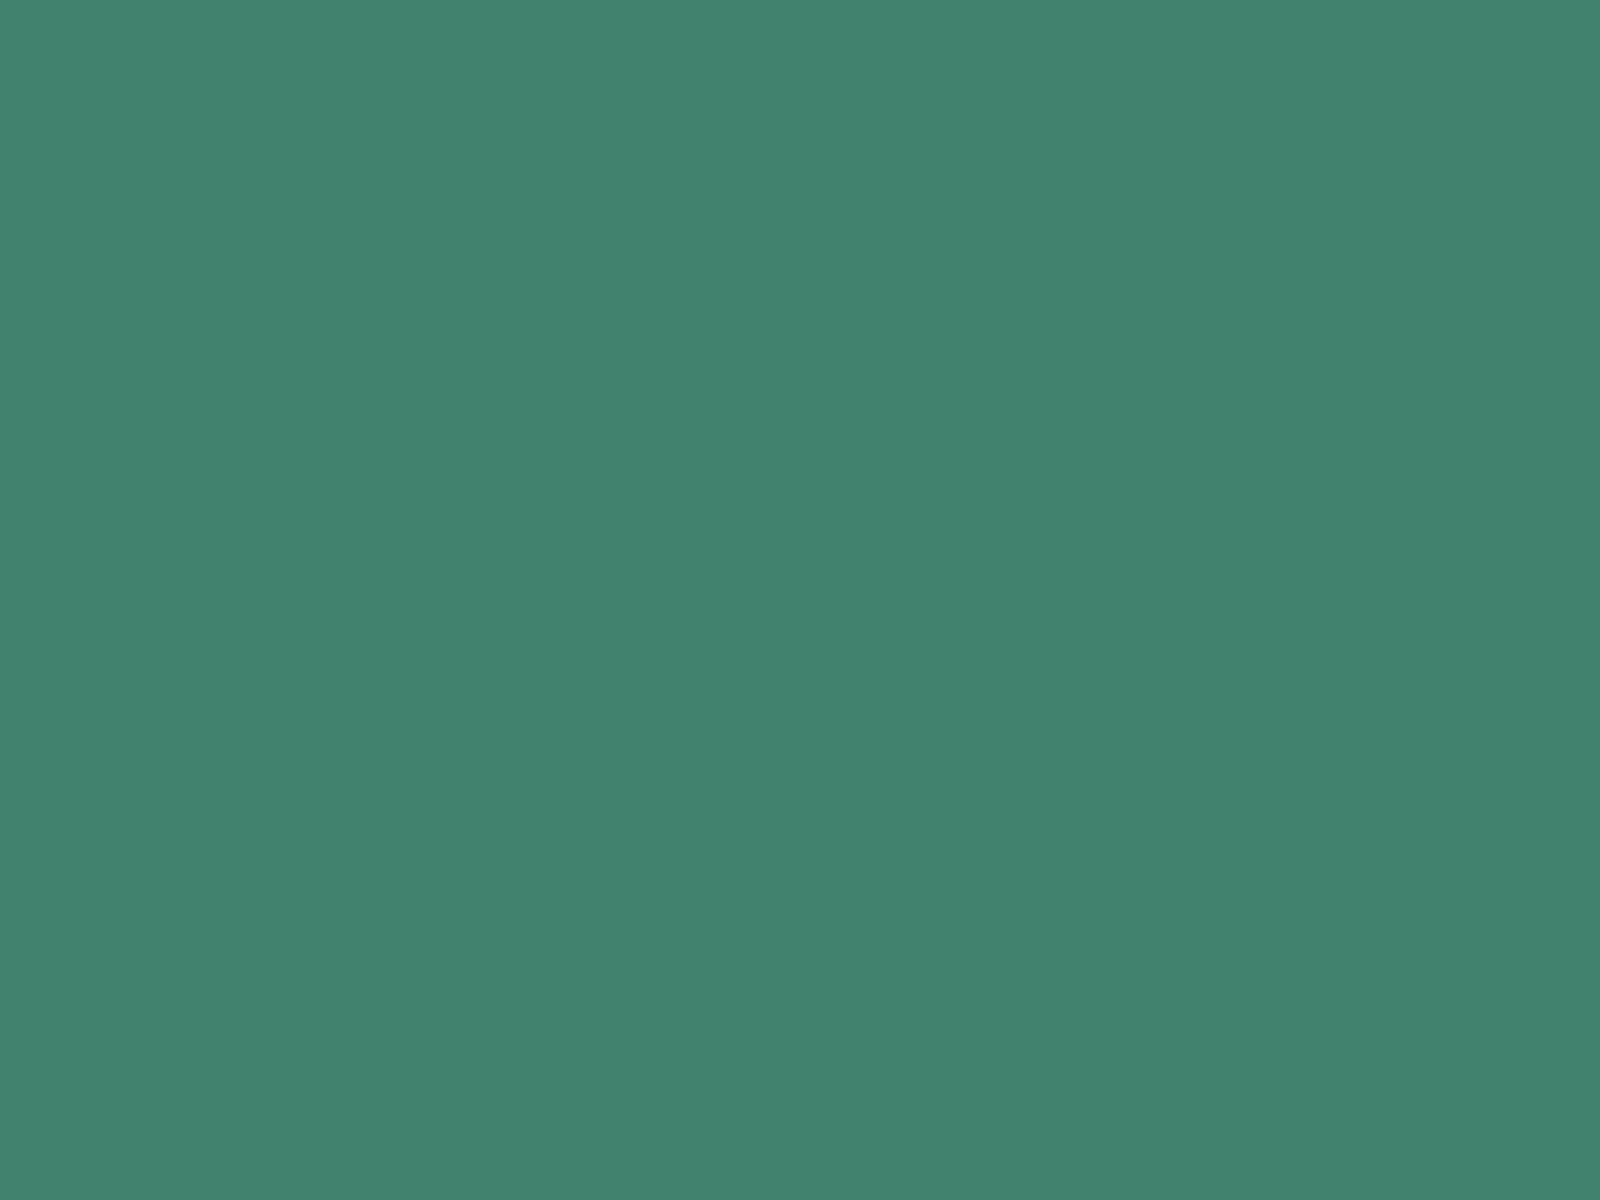 1600x1200 Viridian Solid Color Background